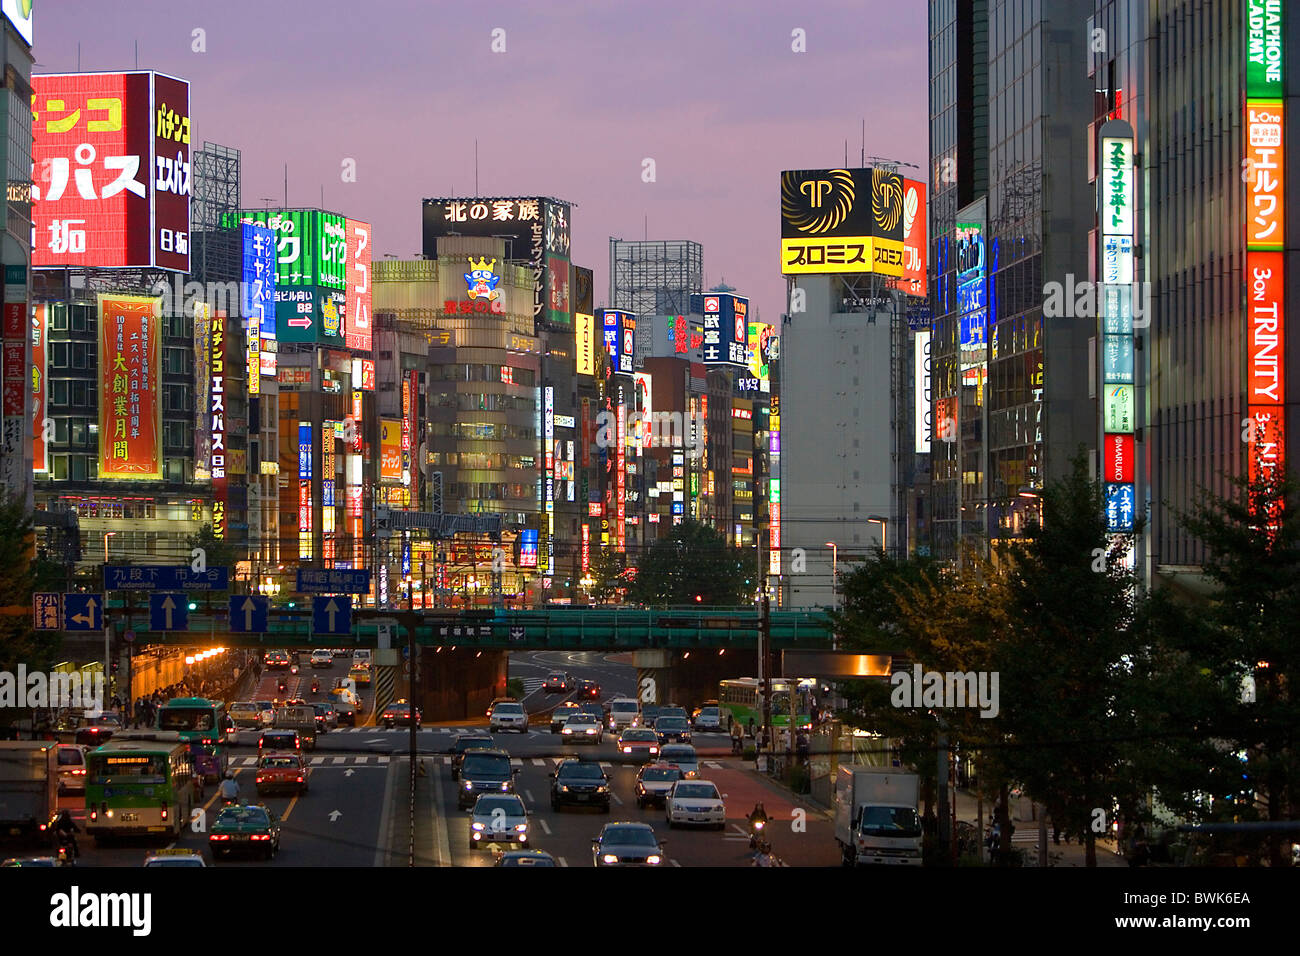 Stock Photo Japan Asia Tokyo Tokyo Shinjuku Nishi Shinjuku Street Transport Traffic 32998962 on html shopping cart